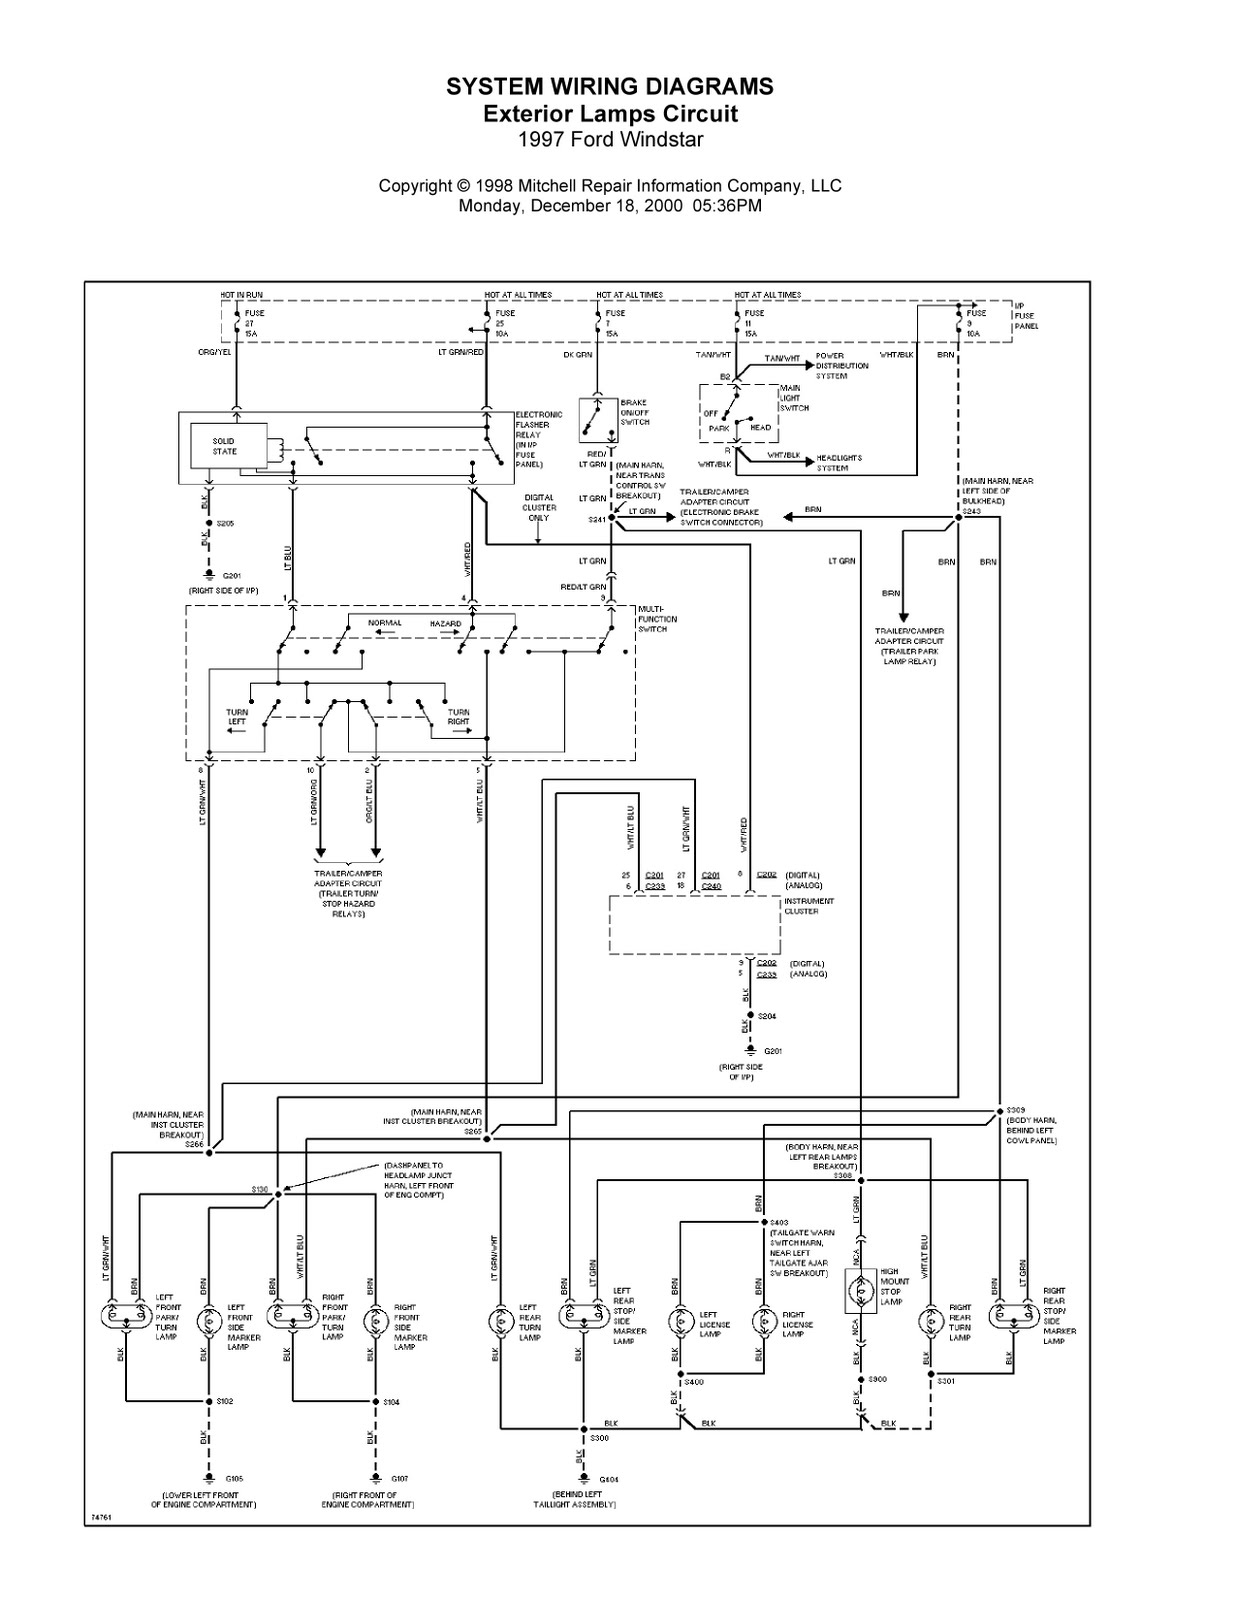 small resolution of 1997 ford windstar complete system wiring diagrams 2000 ford windstar wiring diagram 2001 ford windstar electrical